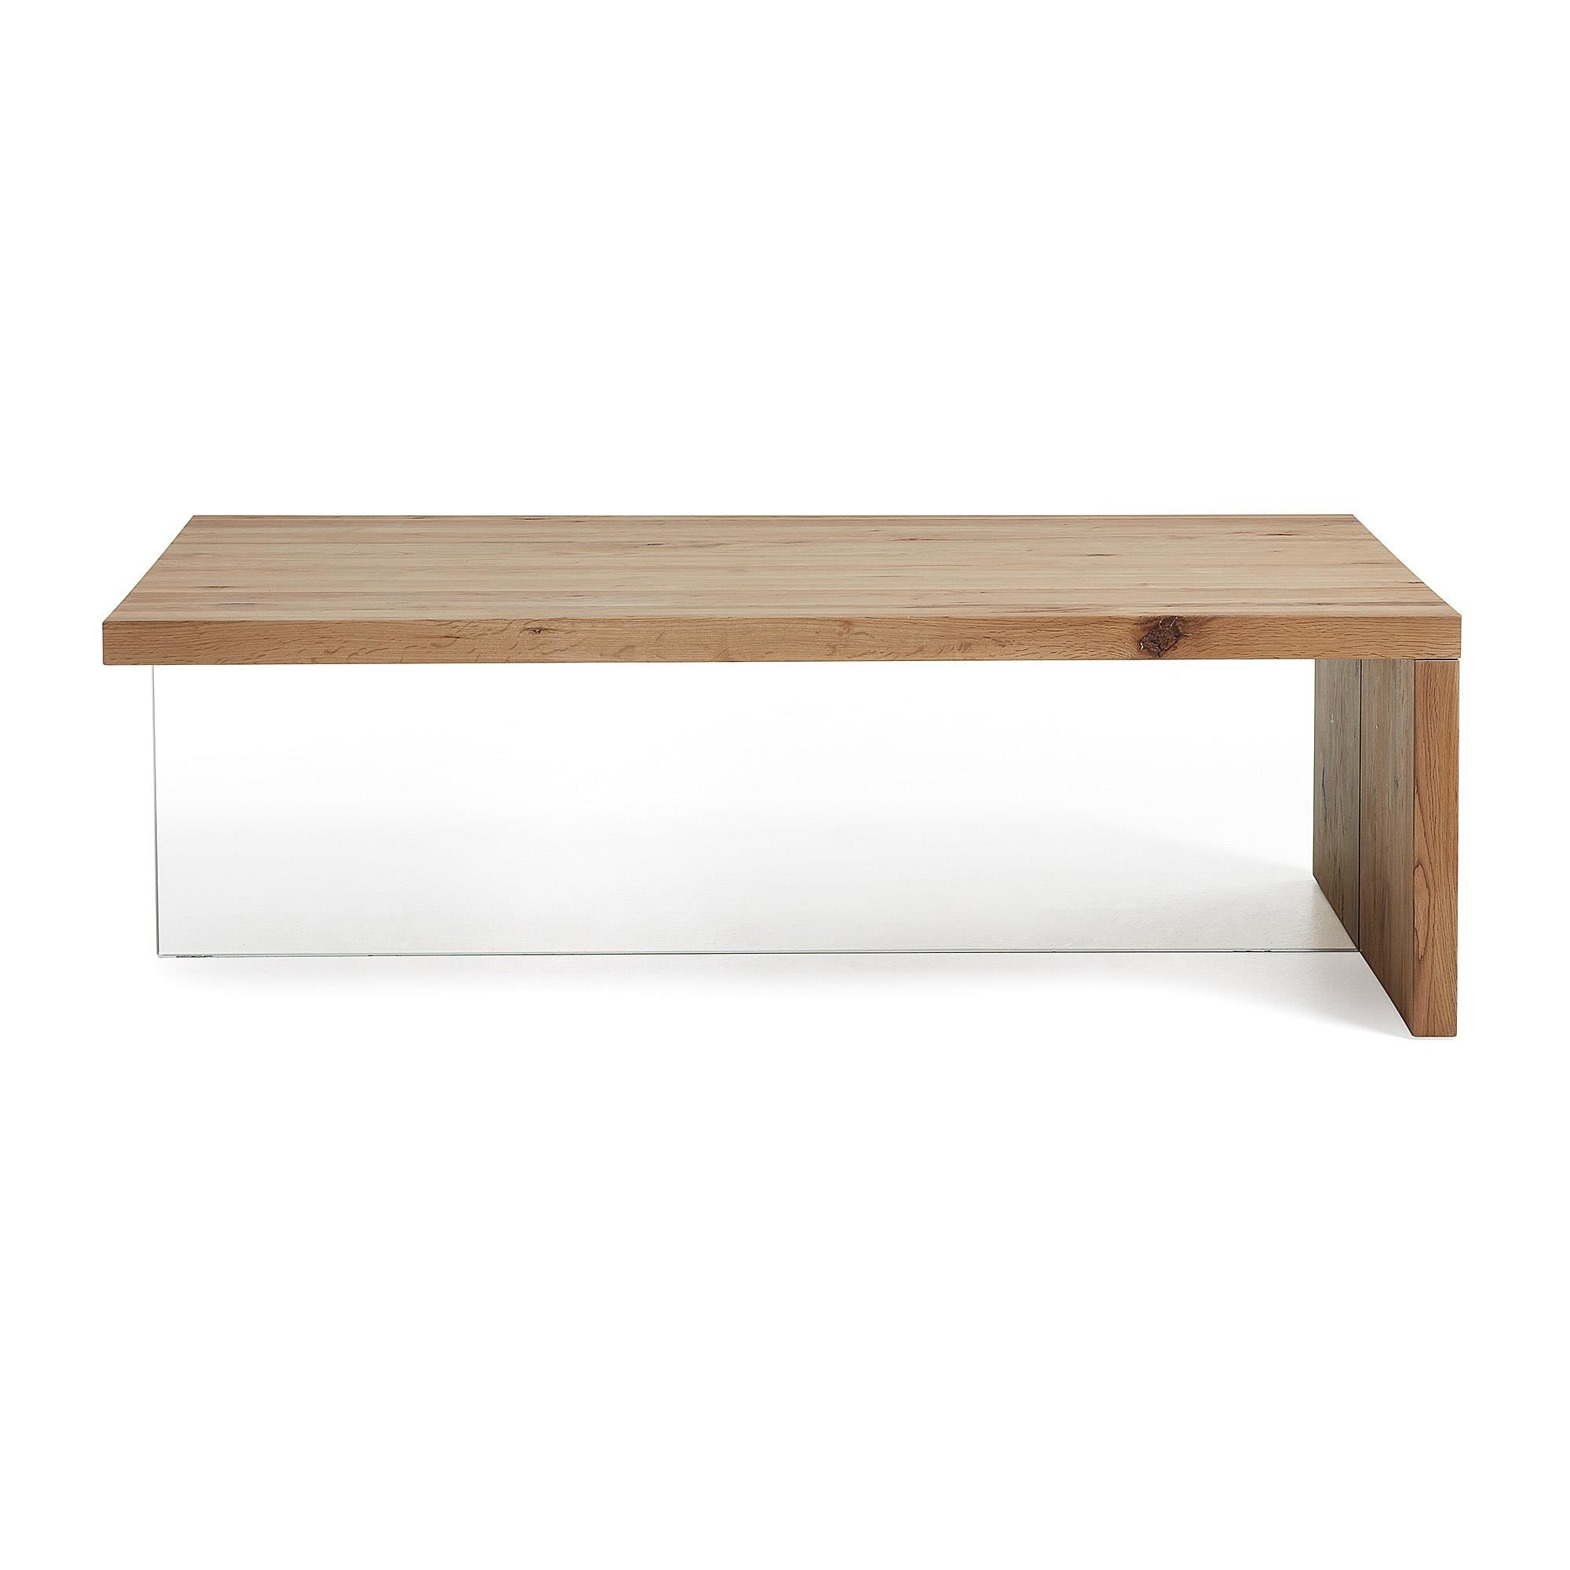 DIOS Coffee table glass top oak wood natural